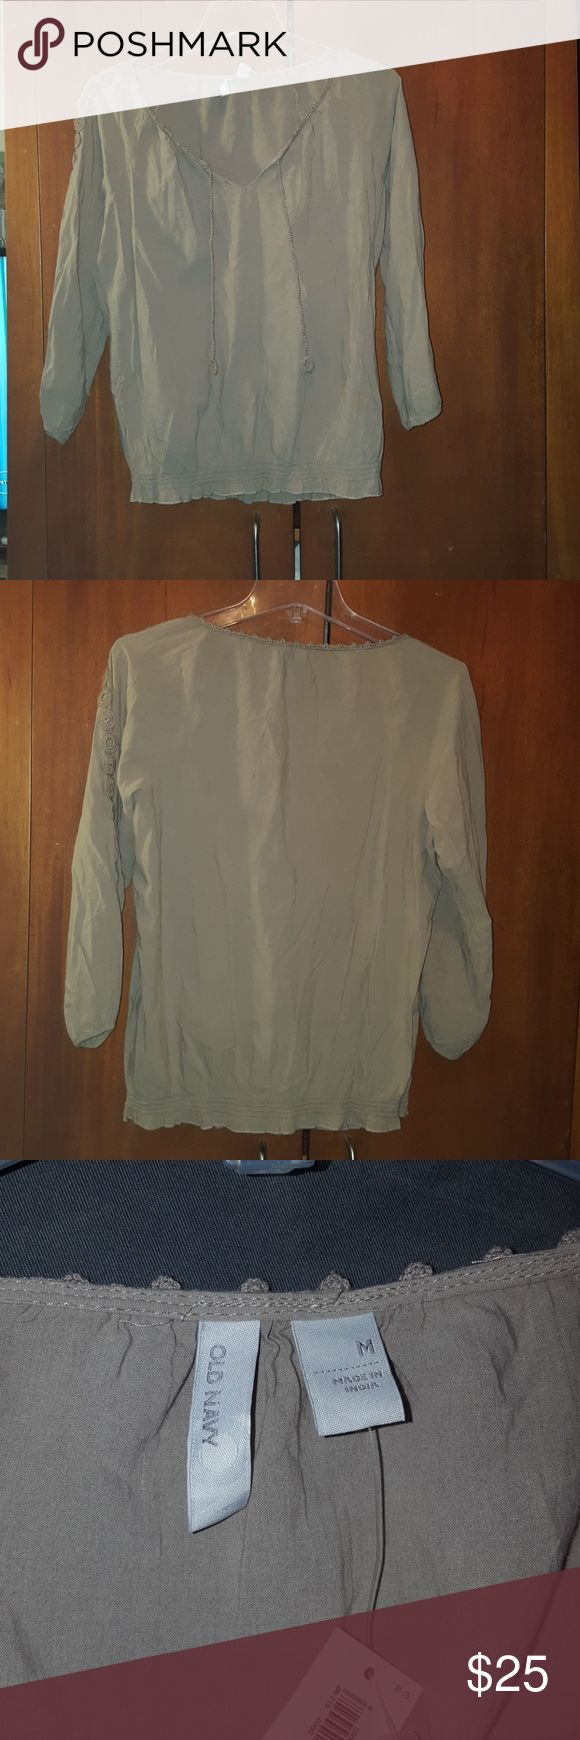 Old navy  women blouse Long sleeves, v neck . Soft, medium-weight cotton flannel. Slightly fitted through body. Shirt hits below waist Old Navy Tops Blouses